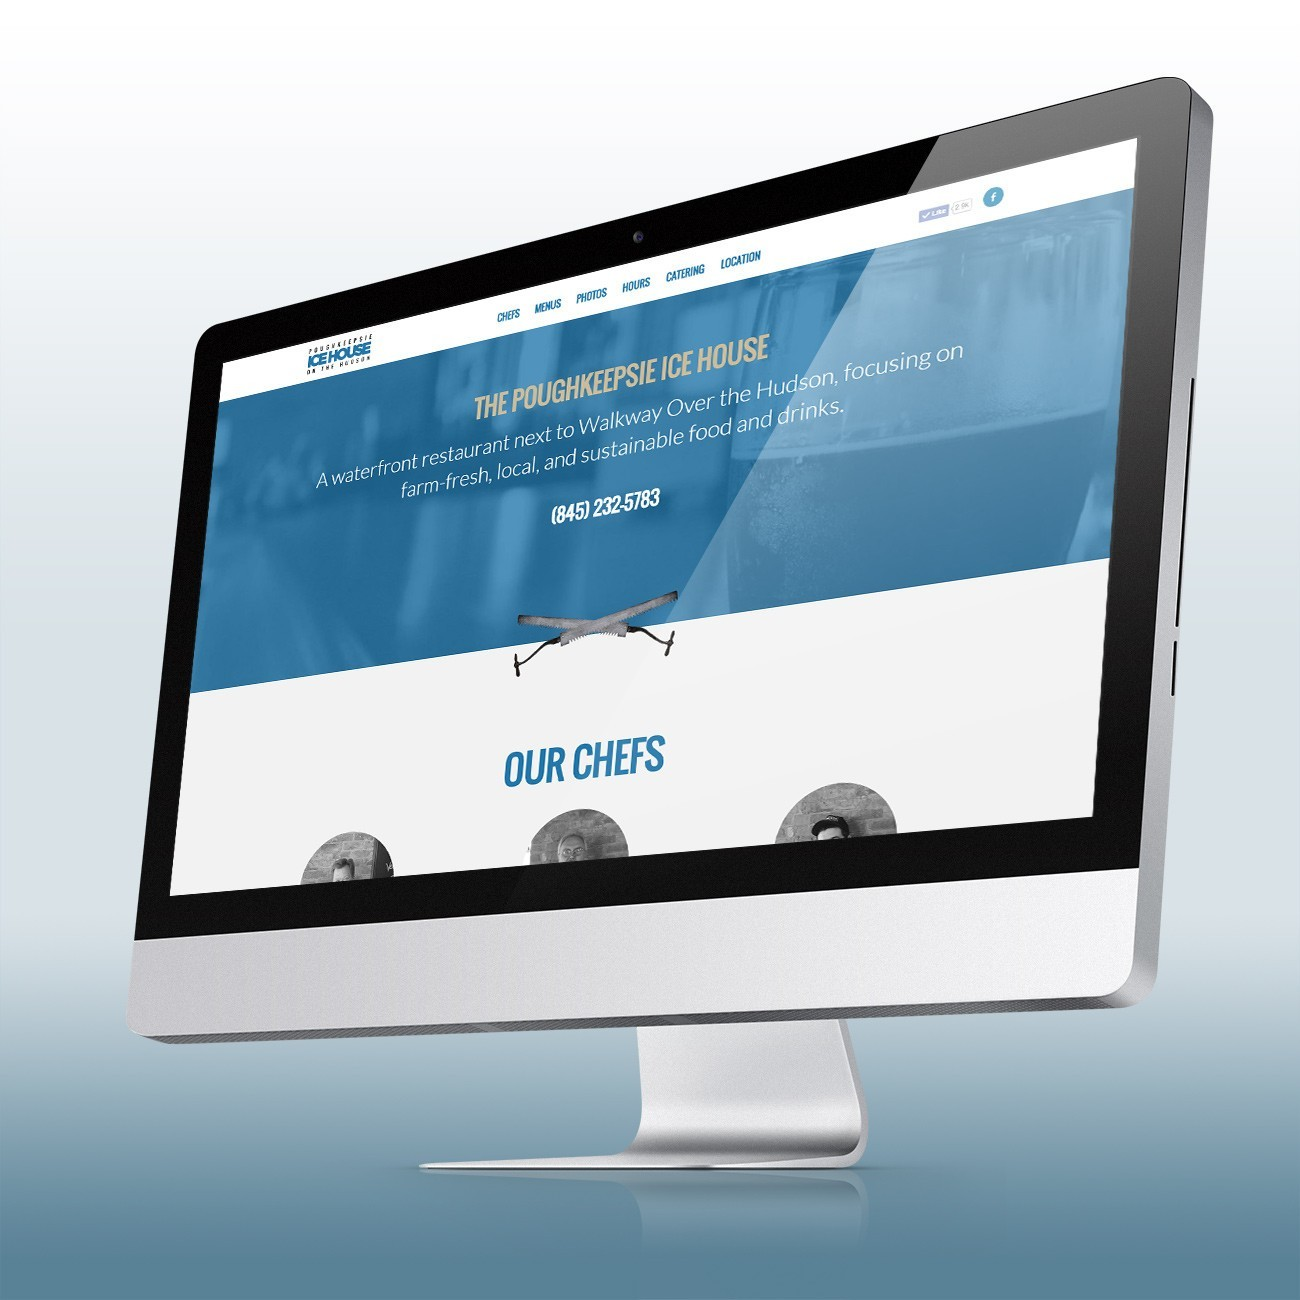 Poughkeepsie Ice House Website, designed by Query Creative in the Hudson Valley